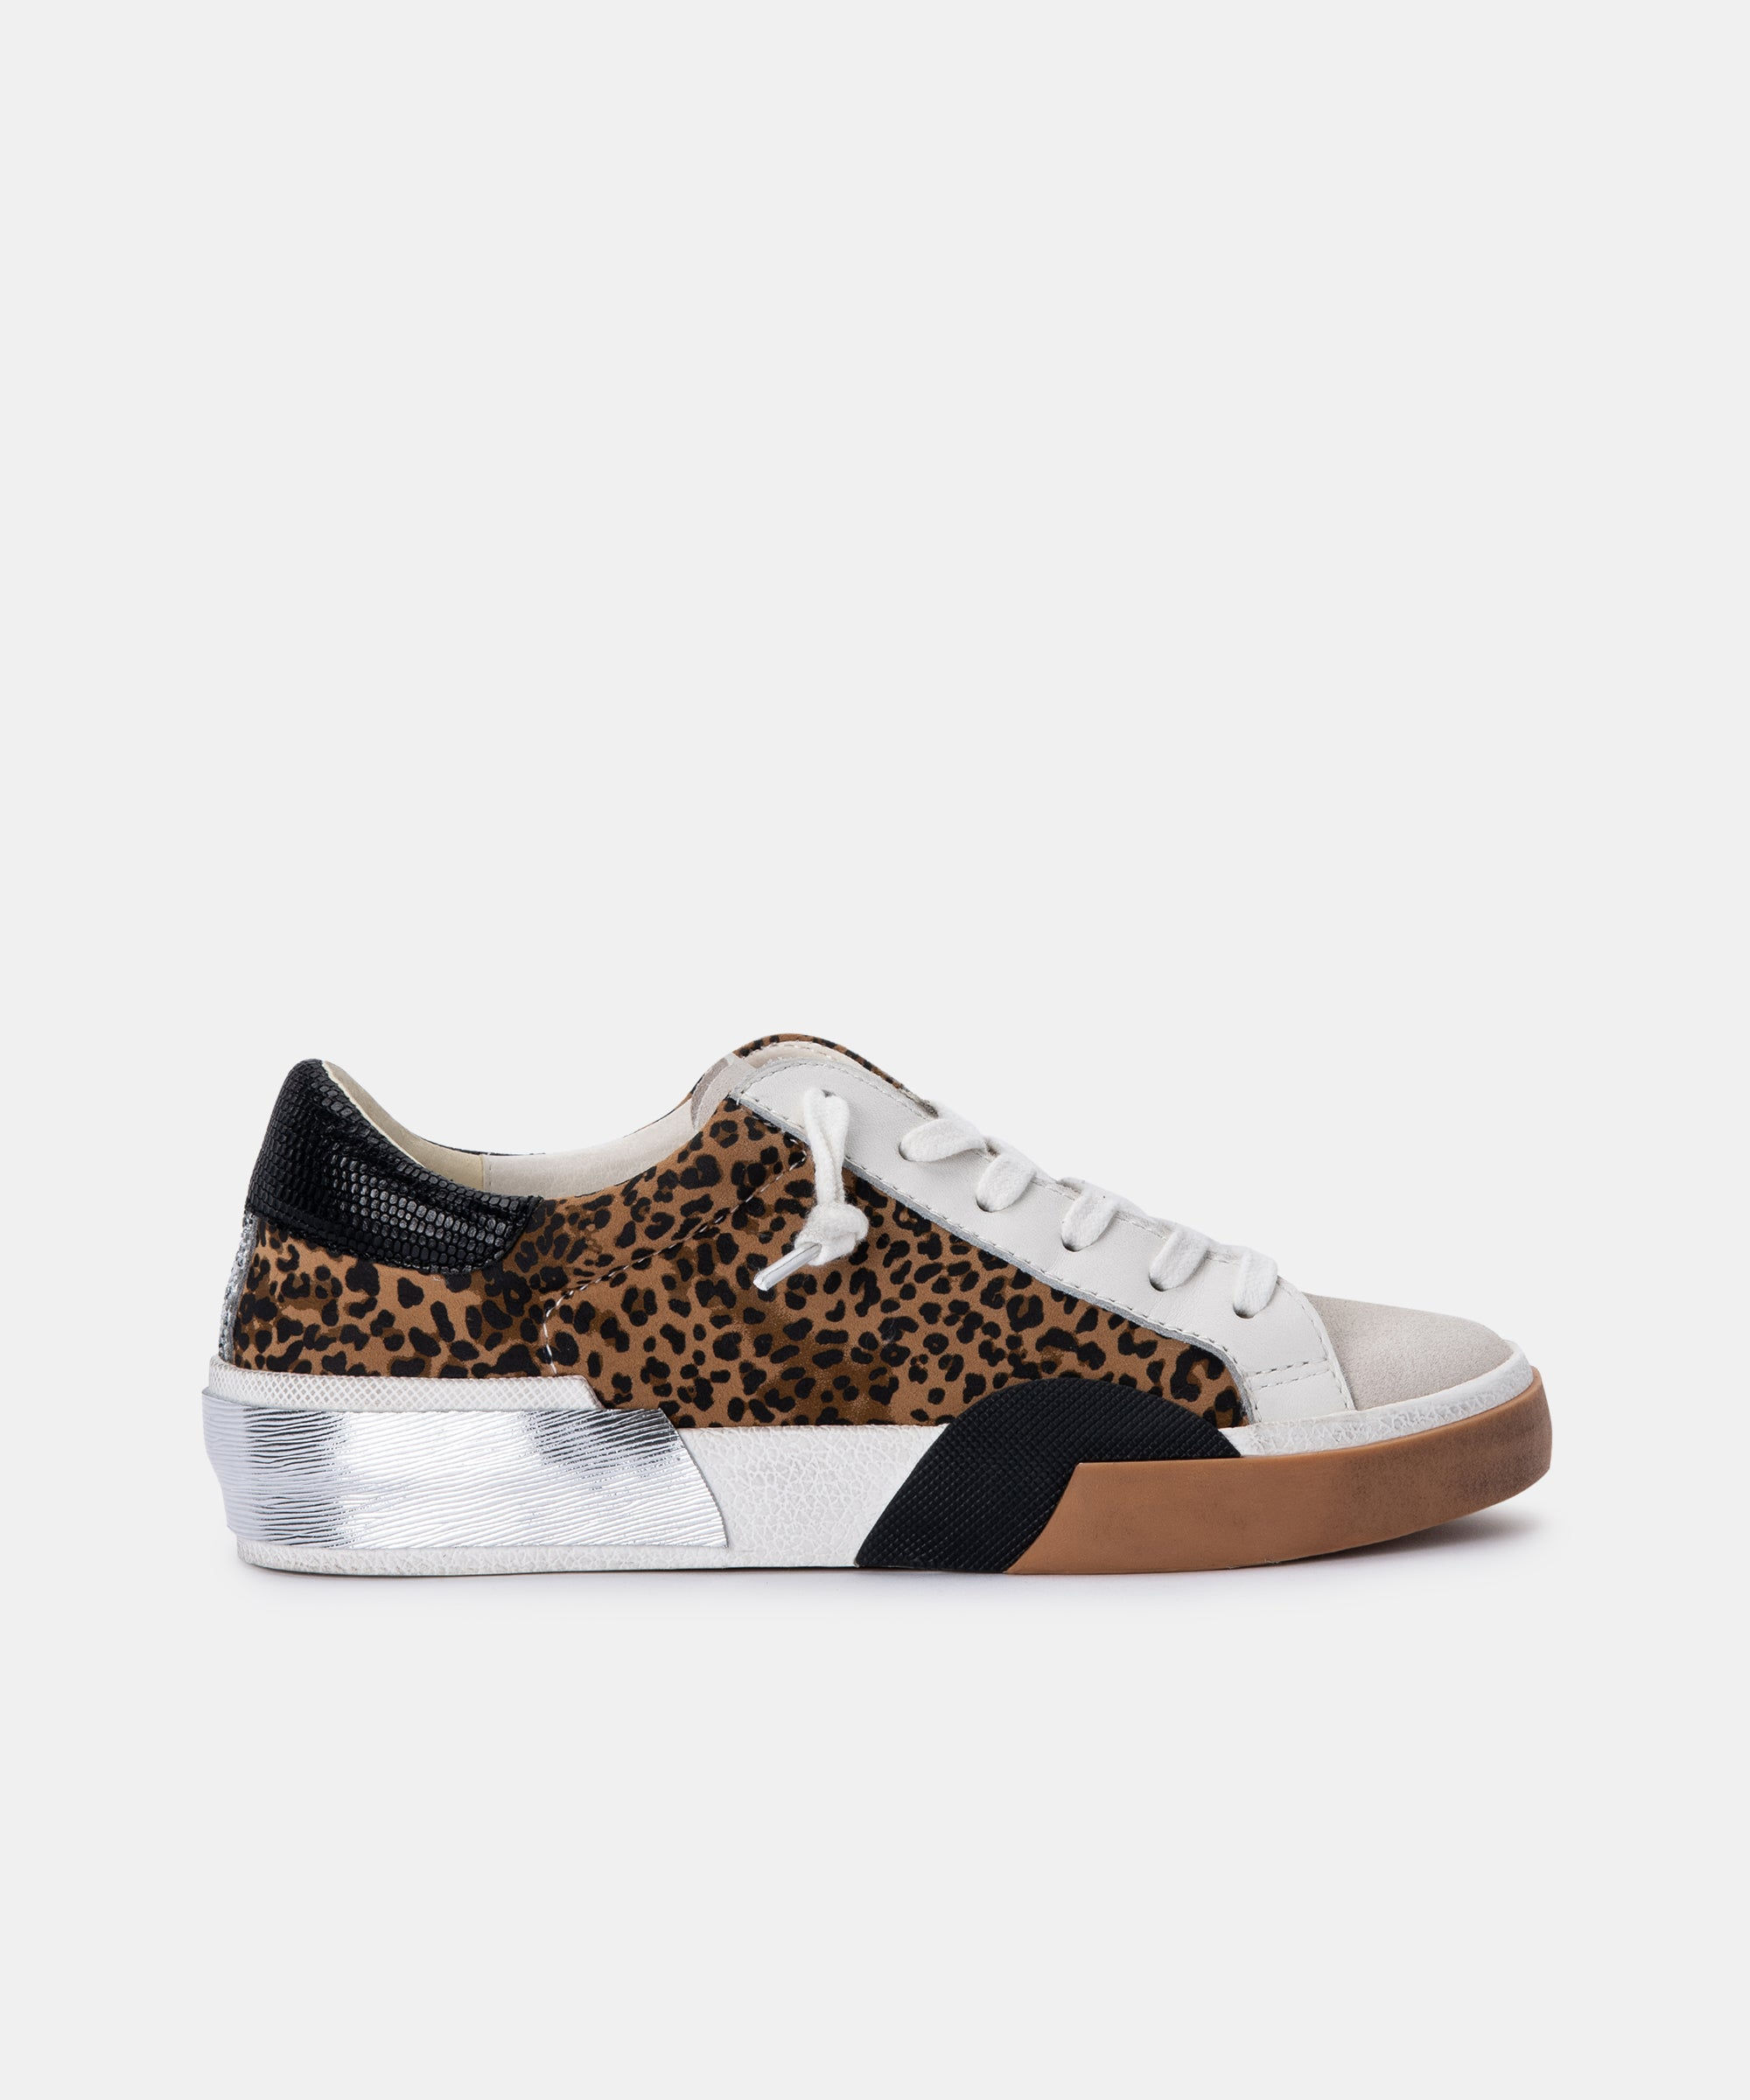 ZINA SNEAKERS IN TAN/BLACK DUSTED LEOPARD SUEDE